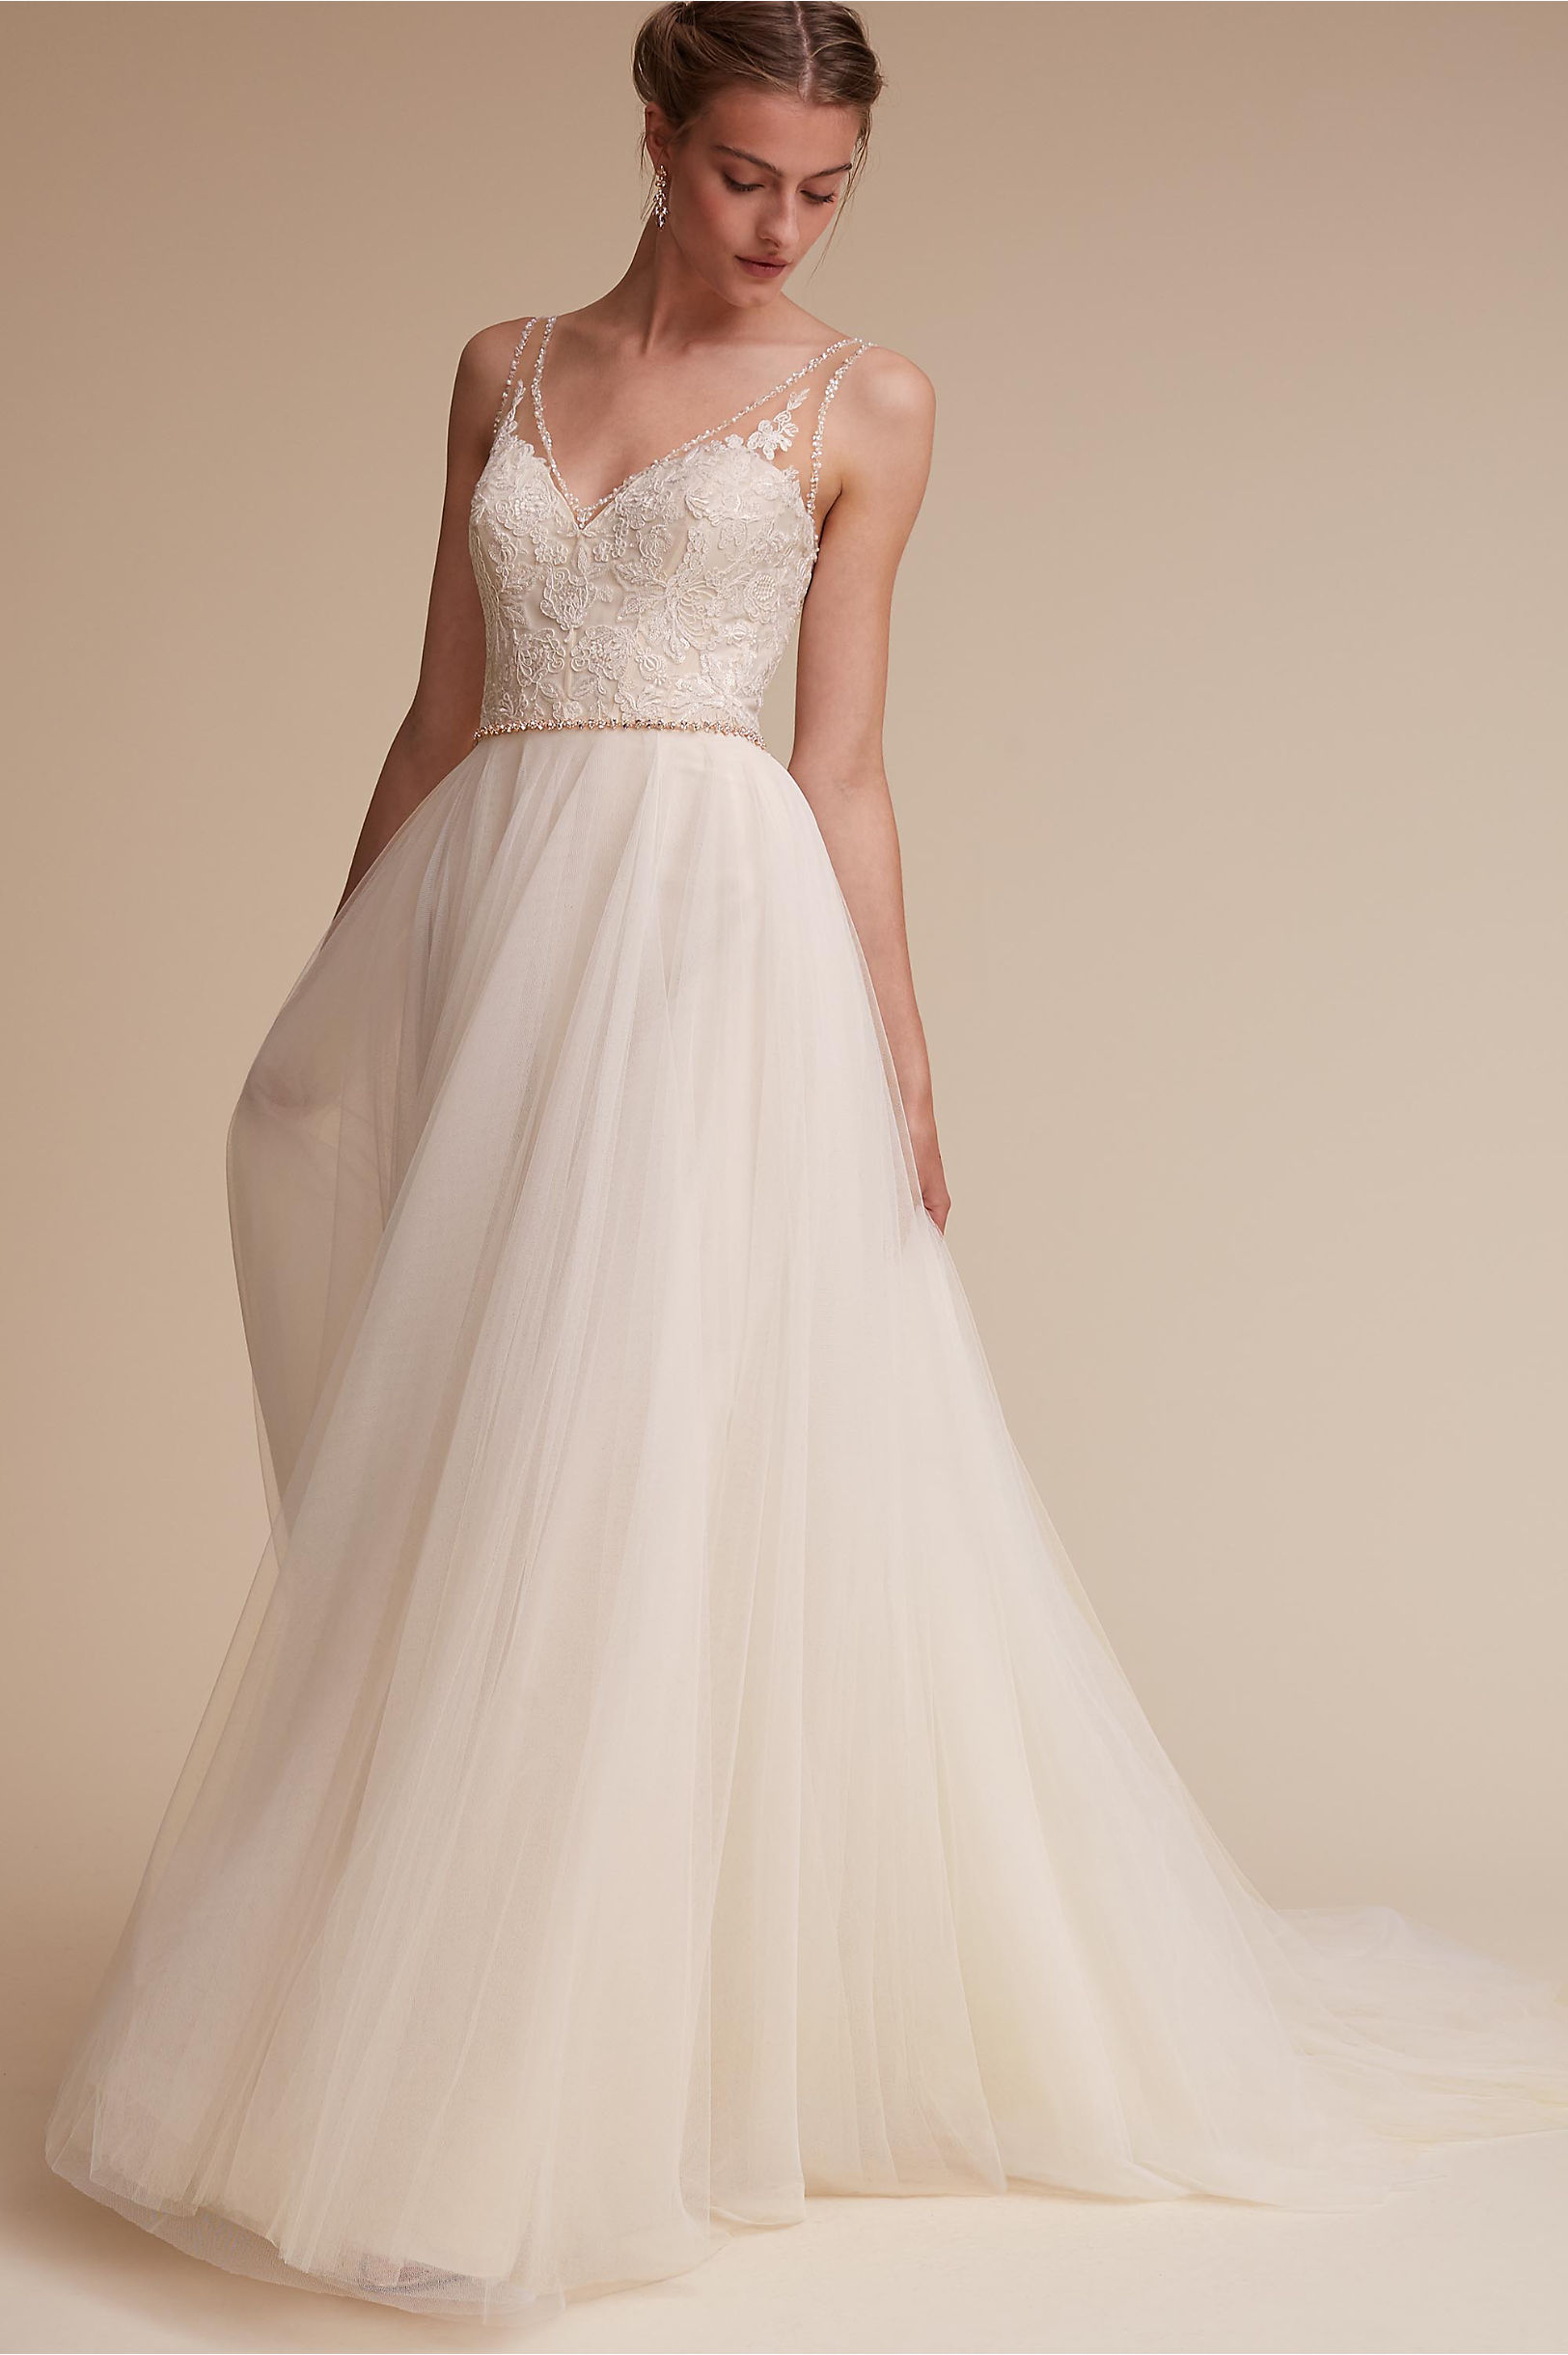 How To Select A Bridal Dress Storiestrending Com